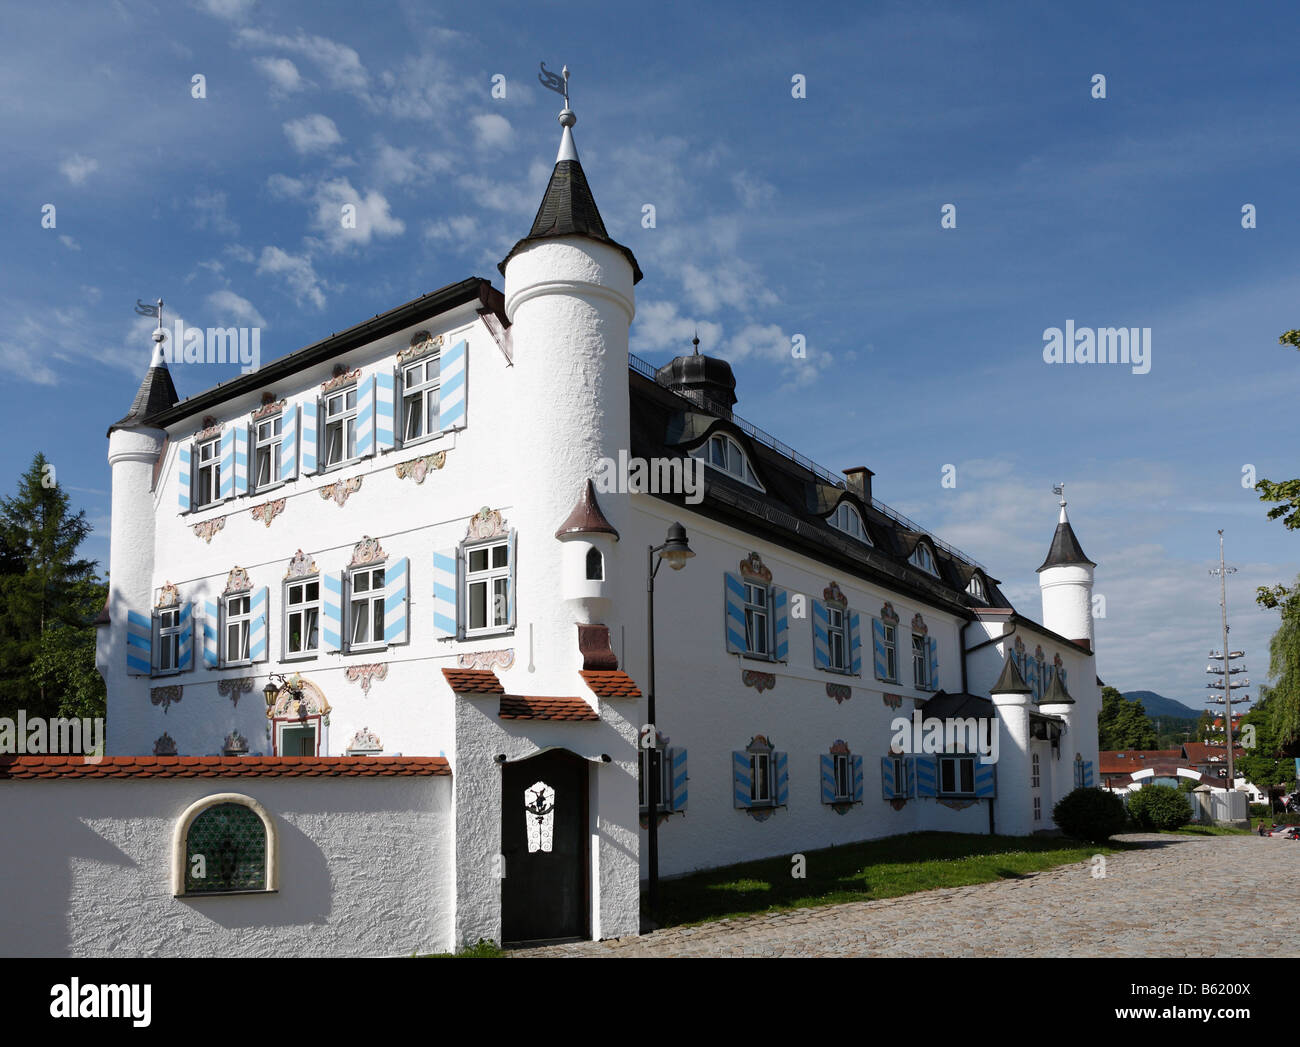 Bonnschloessl Hotel, castle hotel in Bernau on Lake Chiemsee, Chiemgau, Upper Bavaria, Germany, Europe - Stock Image